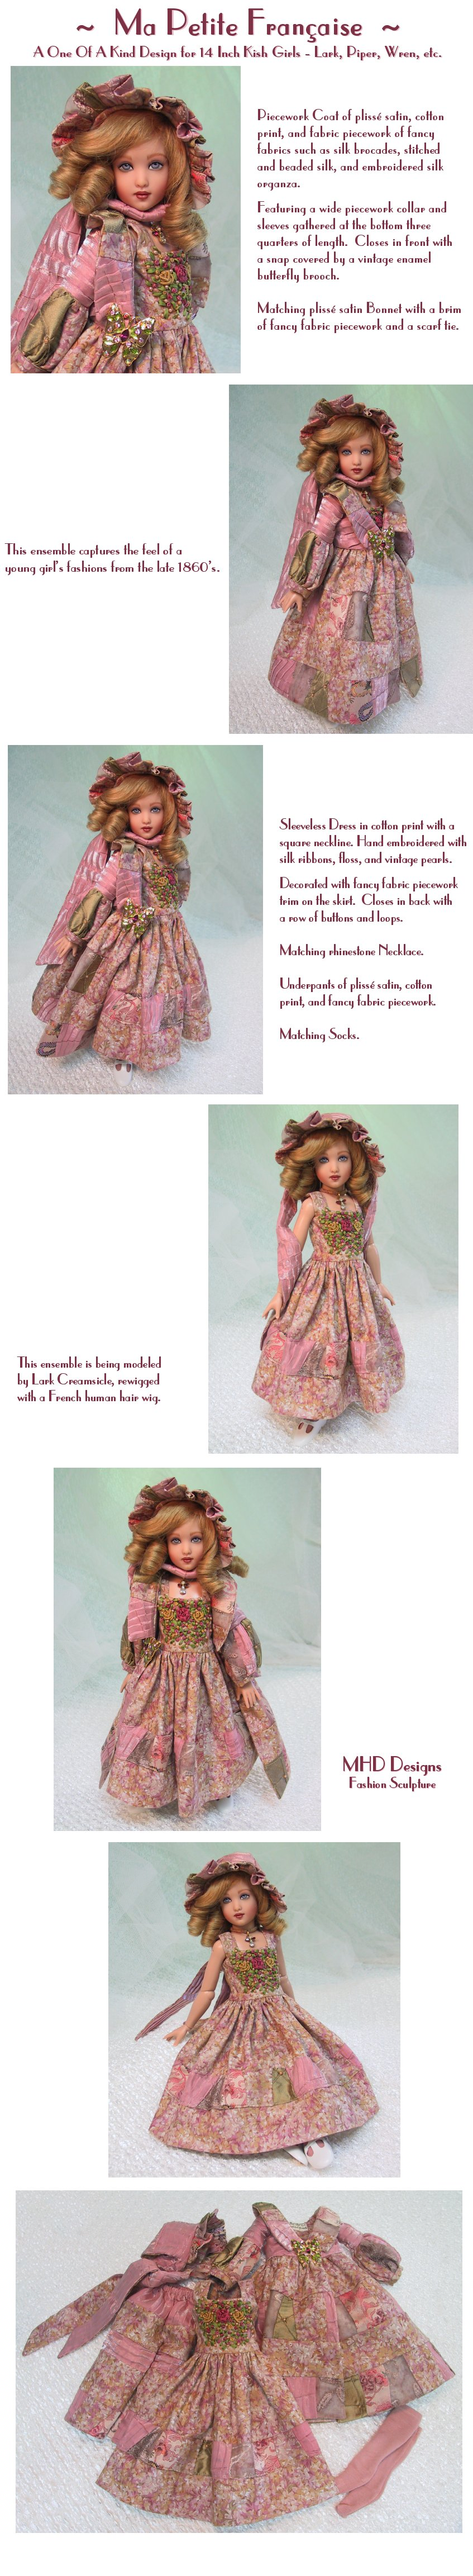 MHD Designs - My Little French Girl - a One Of A Kind Design Collection